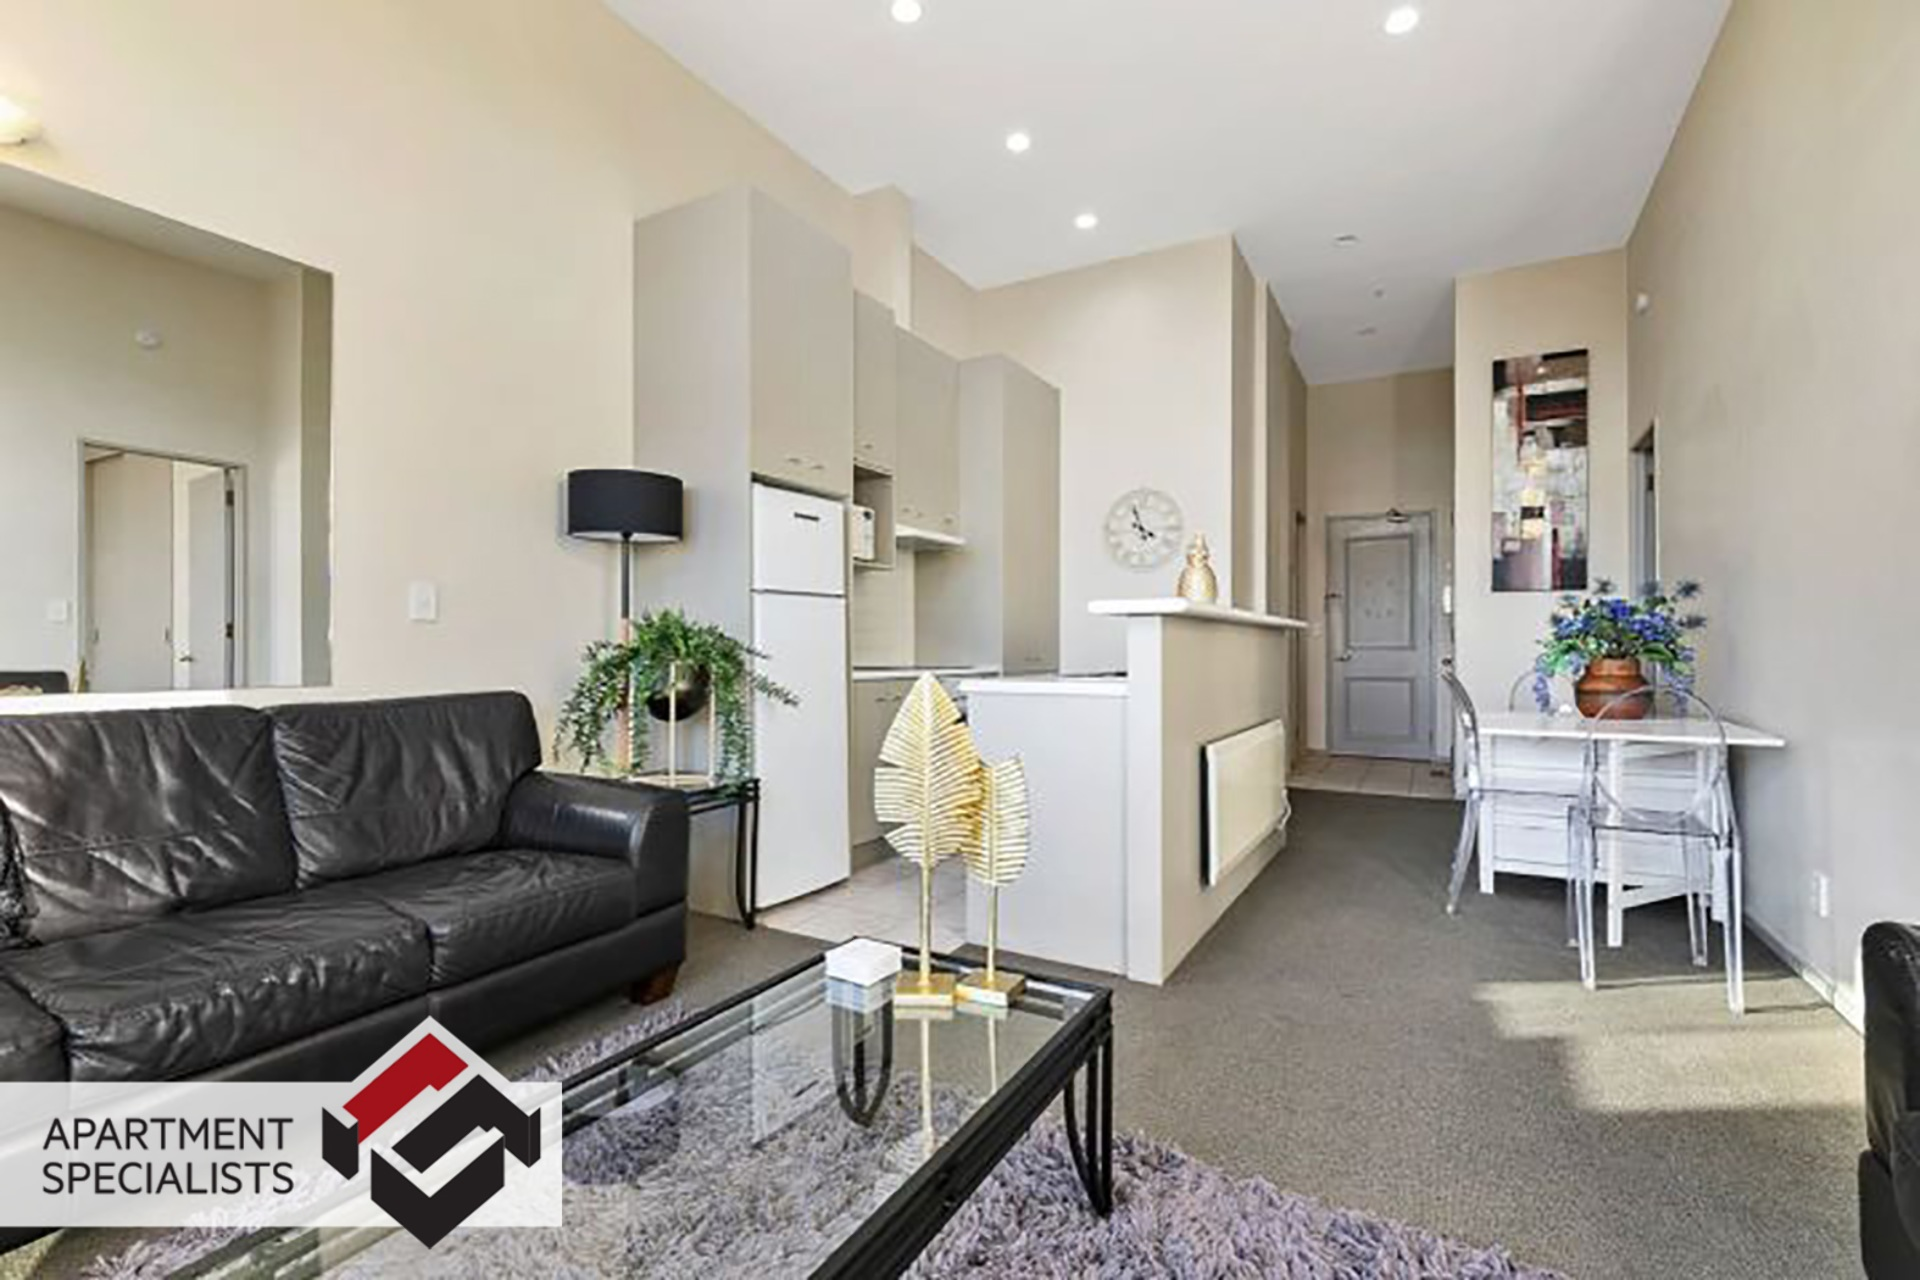 4 | 50 Eden Crescent, City Centre | Apartment Specialists